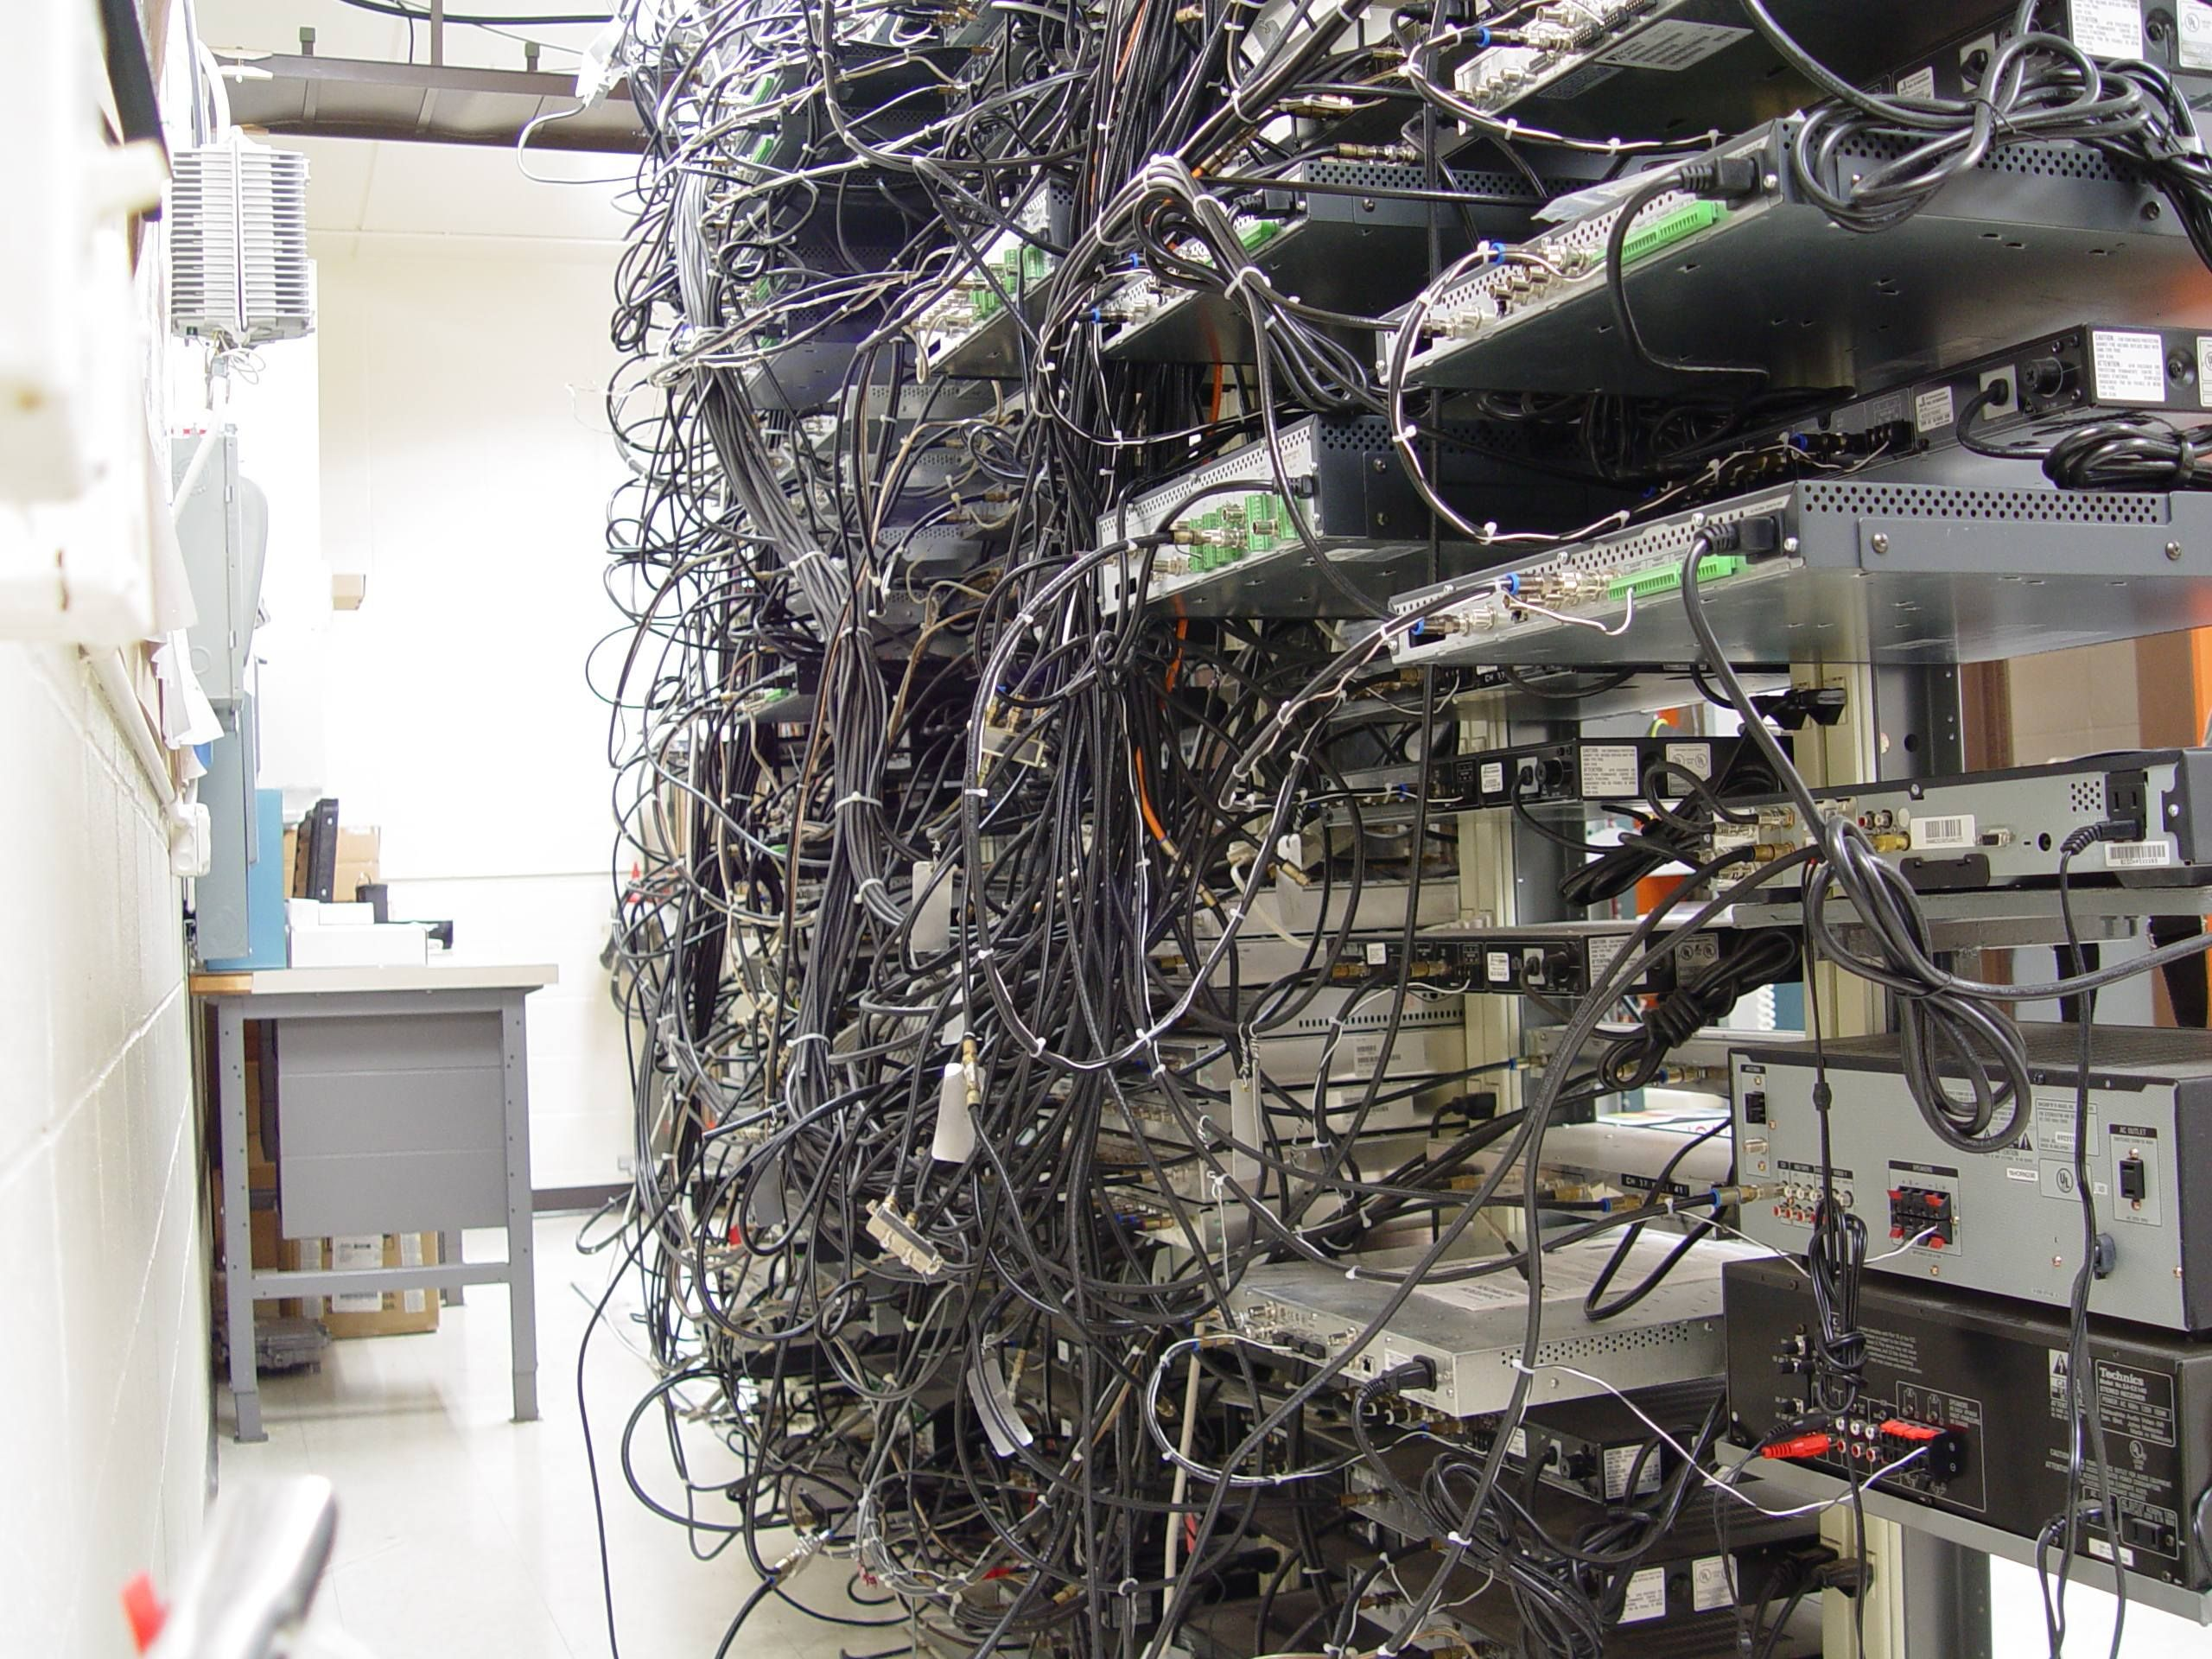 Server room  Computer Repair in 2019  Server room Cable